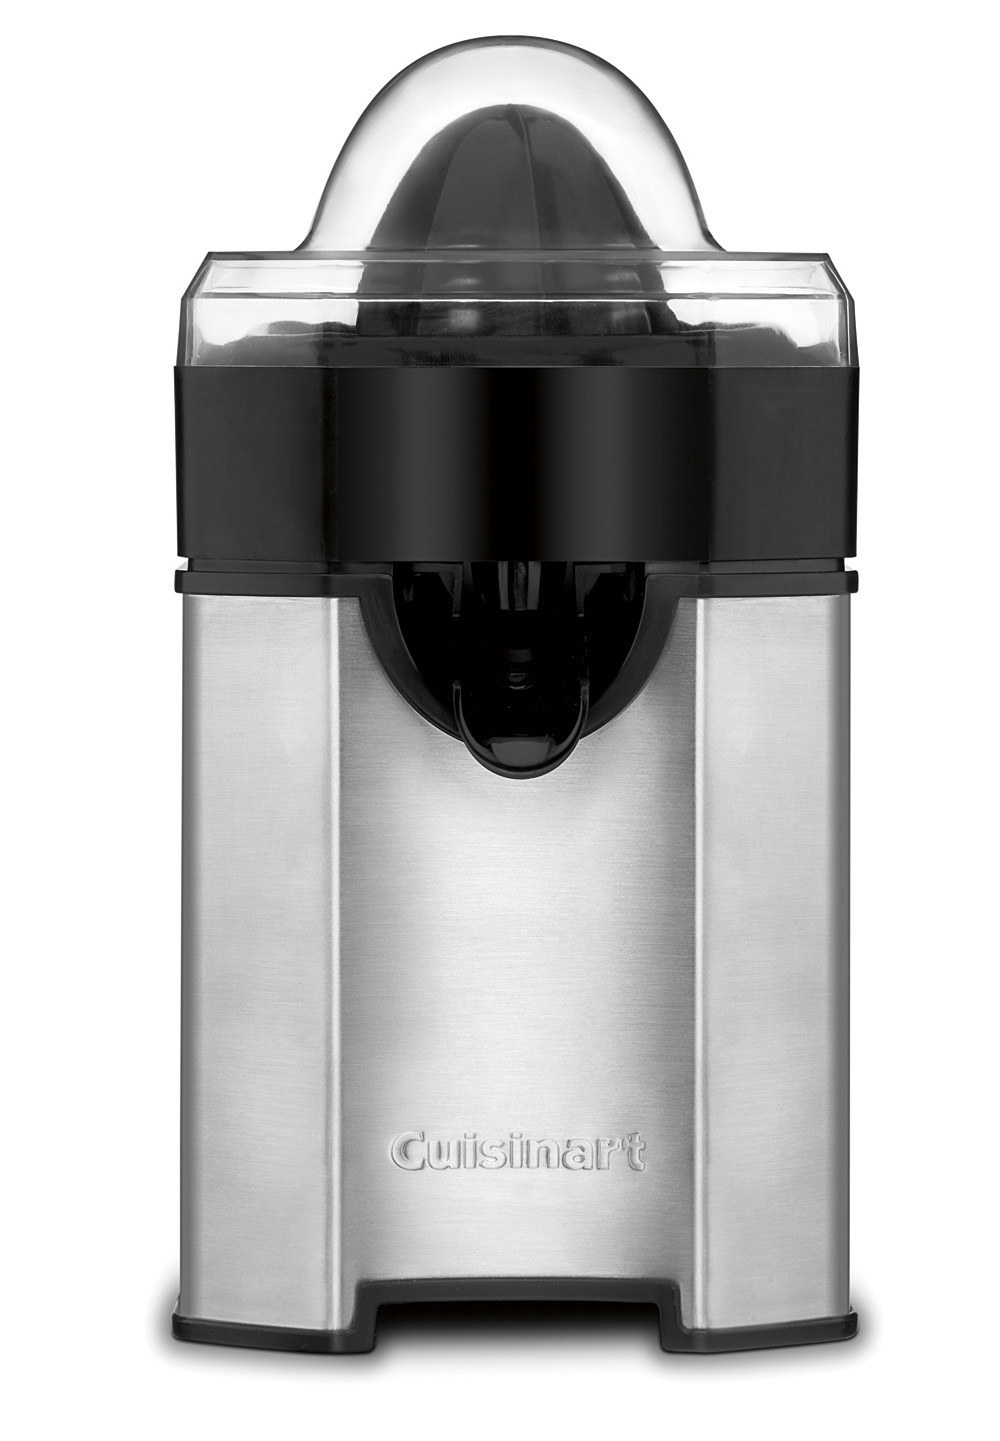 The stainless steel juicer